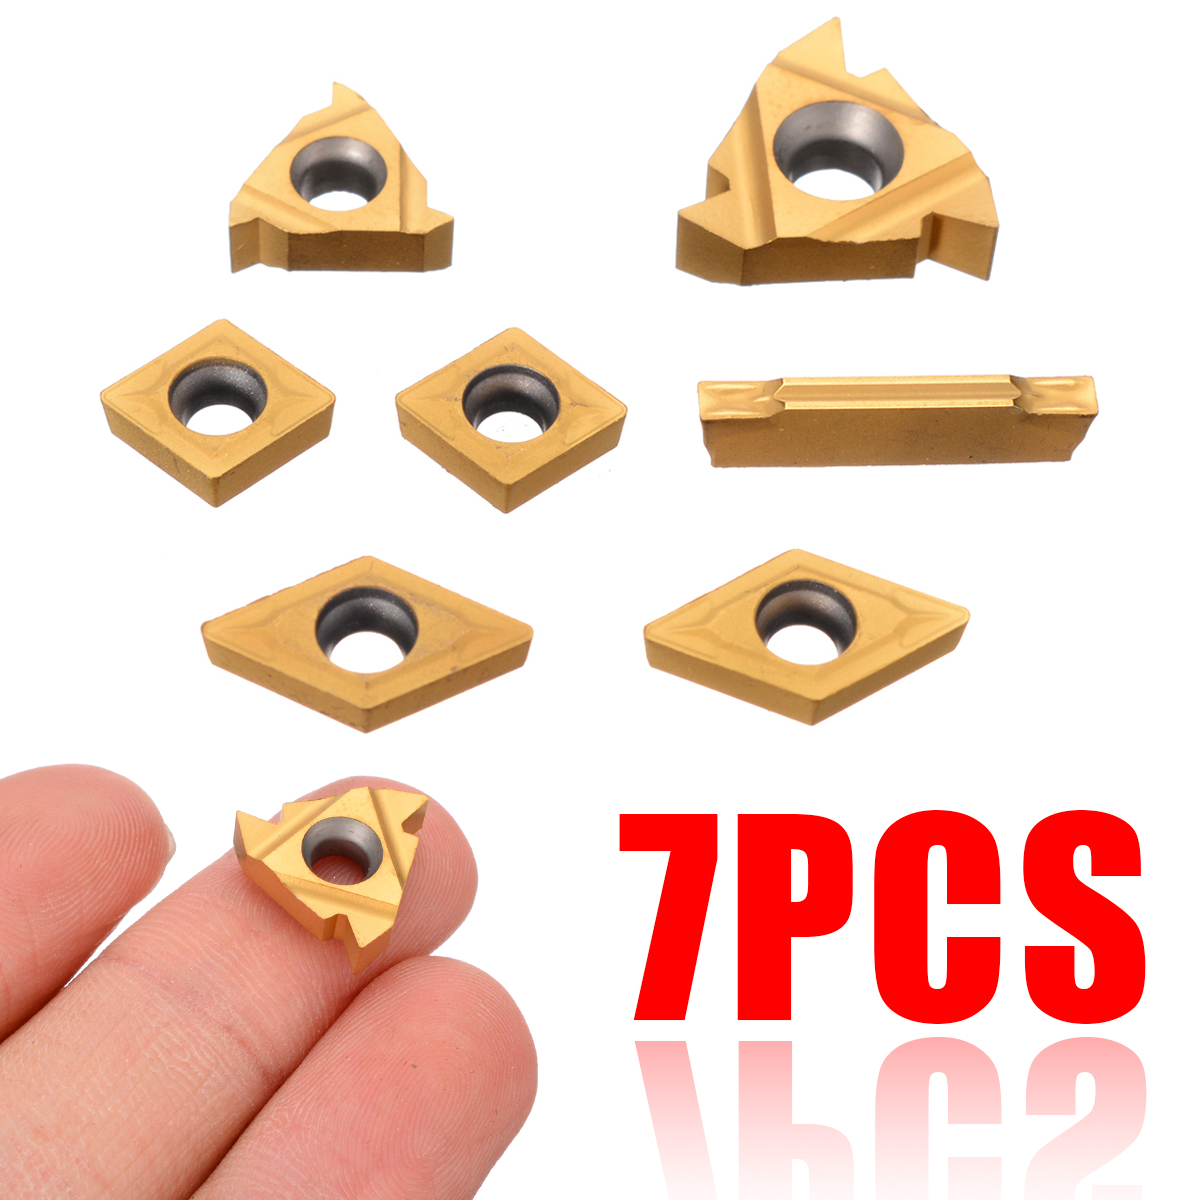 7pcs MGMN200 External Turning Tools Carbide Inserts Cutting Lathe CNC Cutter Tools For 12mm Shank